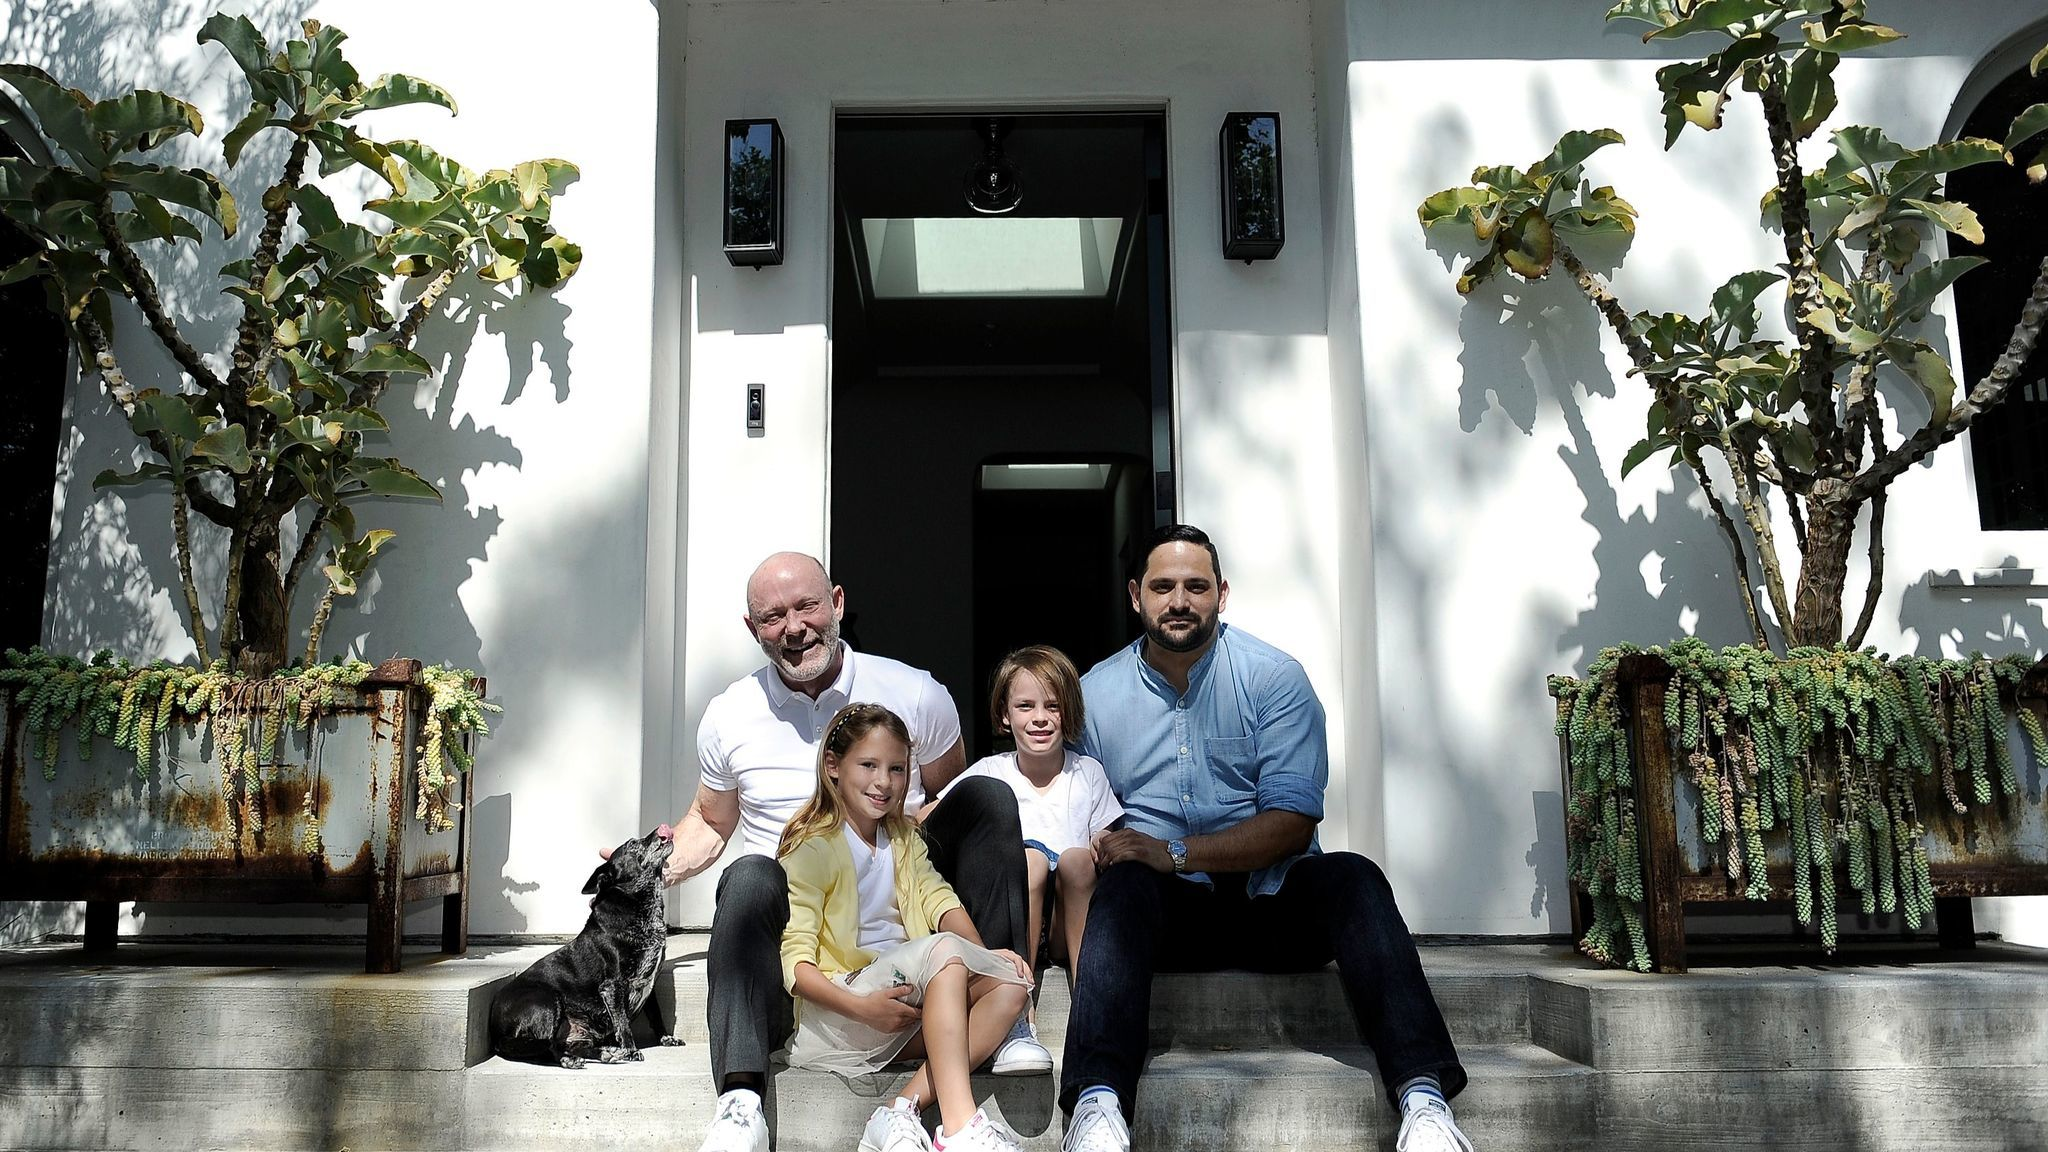 David Collins, left, his daughters Olive and Ella, and David's partner, Joseph Rivas, sit between potted succulents on either side of the front door, which welcome guests in dramatic fashion.